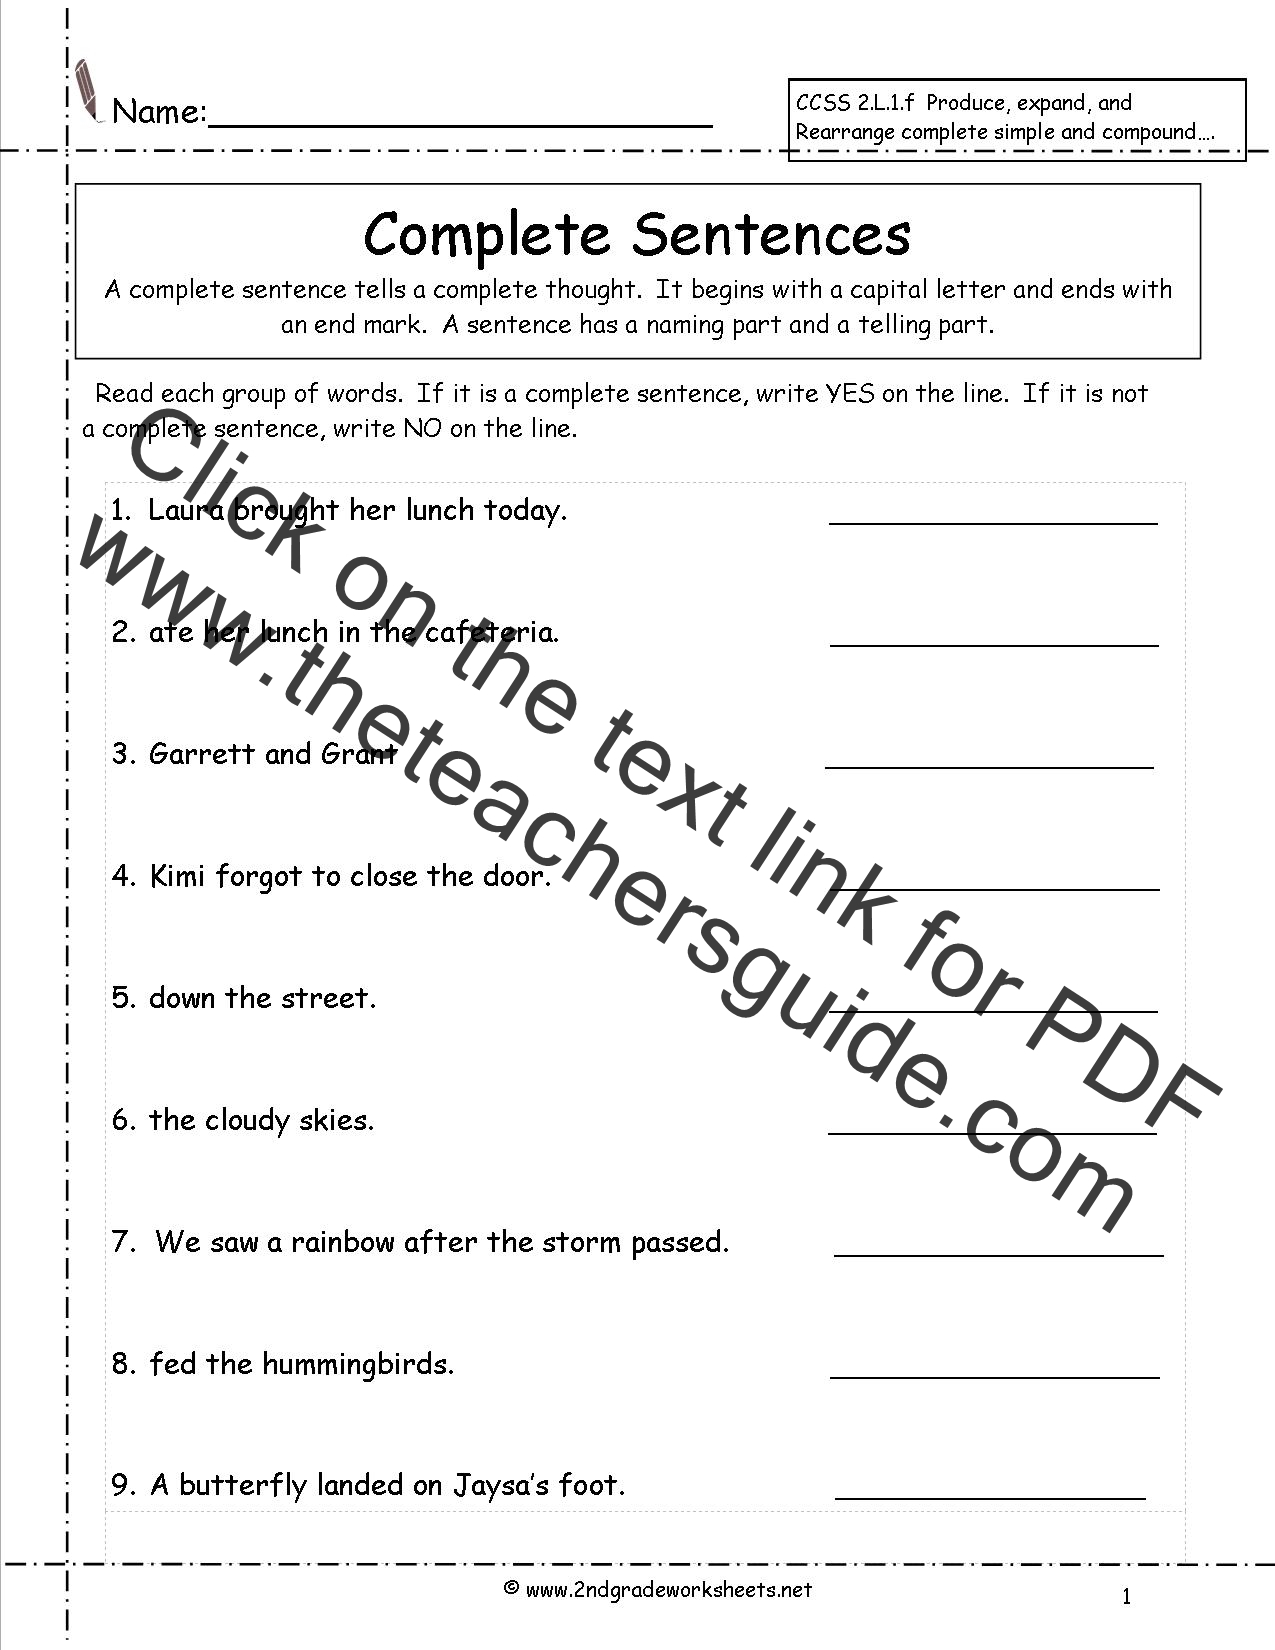 Worksheets Simple Sentences Worksheet second grade sentences worksheets ccss 2 l 1 f worksheets